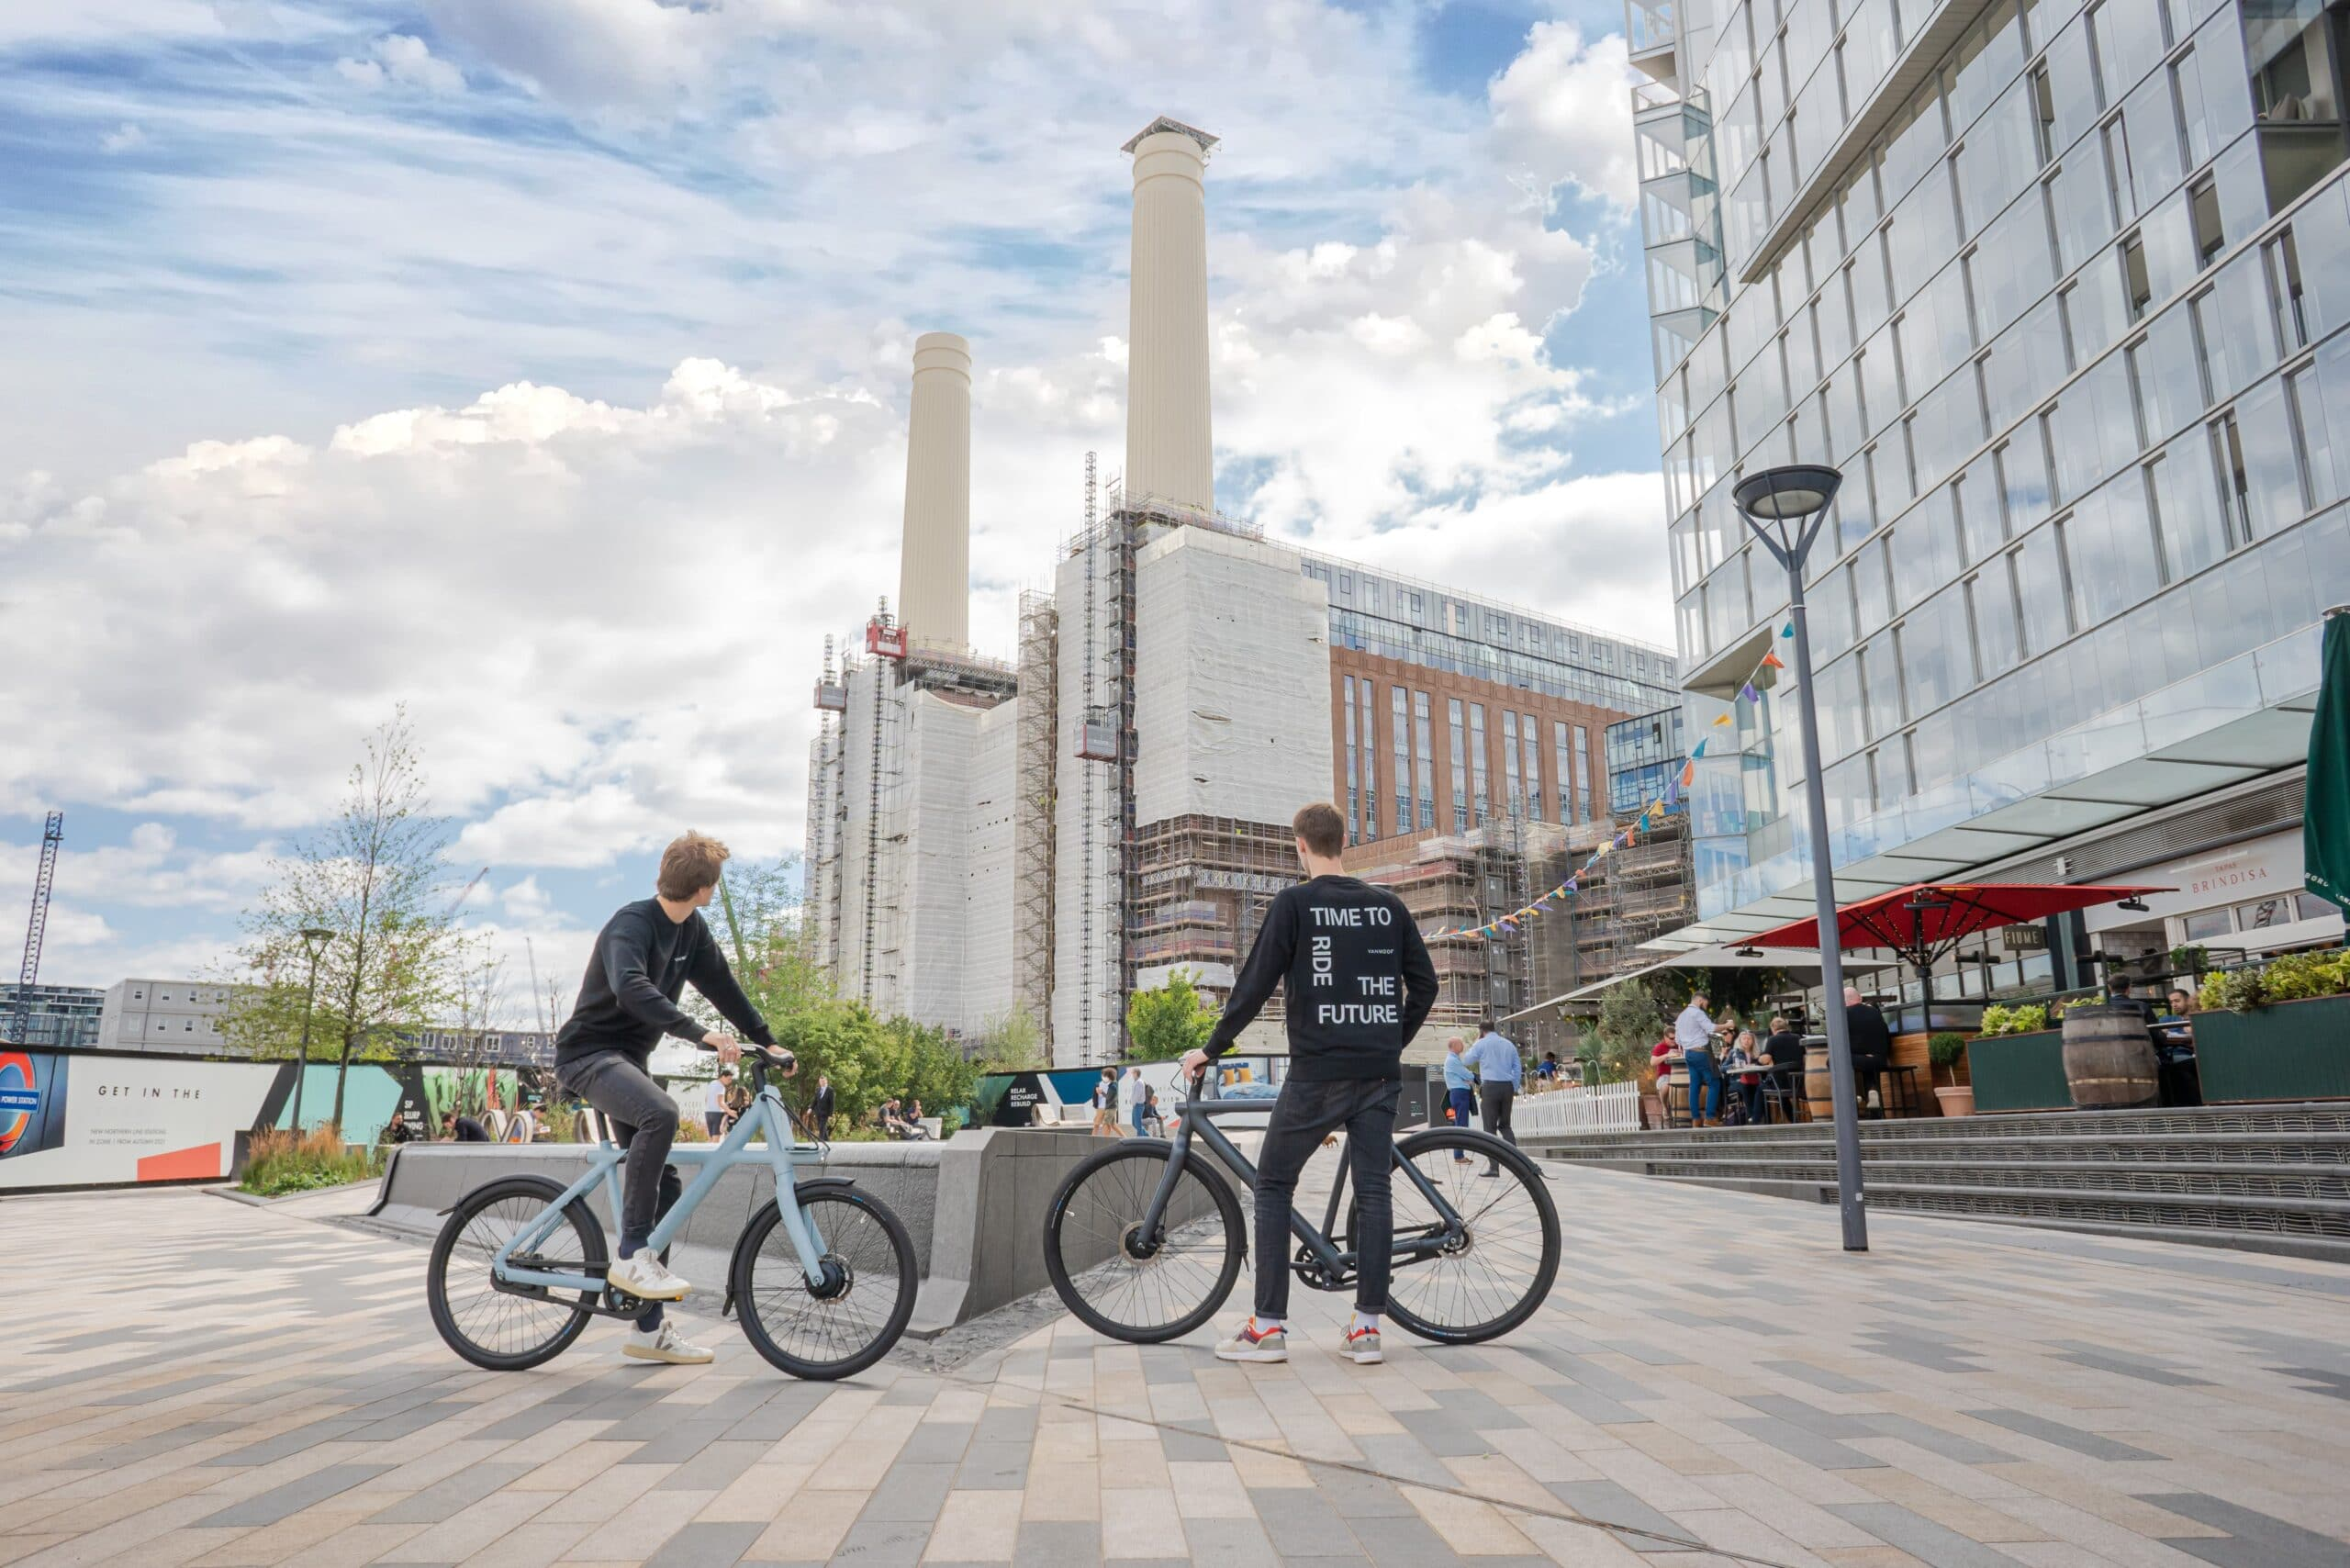 VanMoof at Battersea Power Station